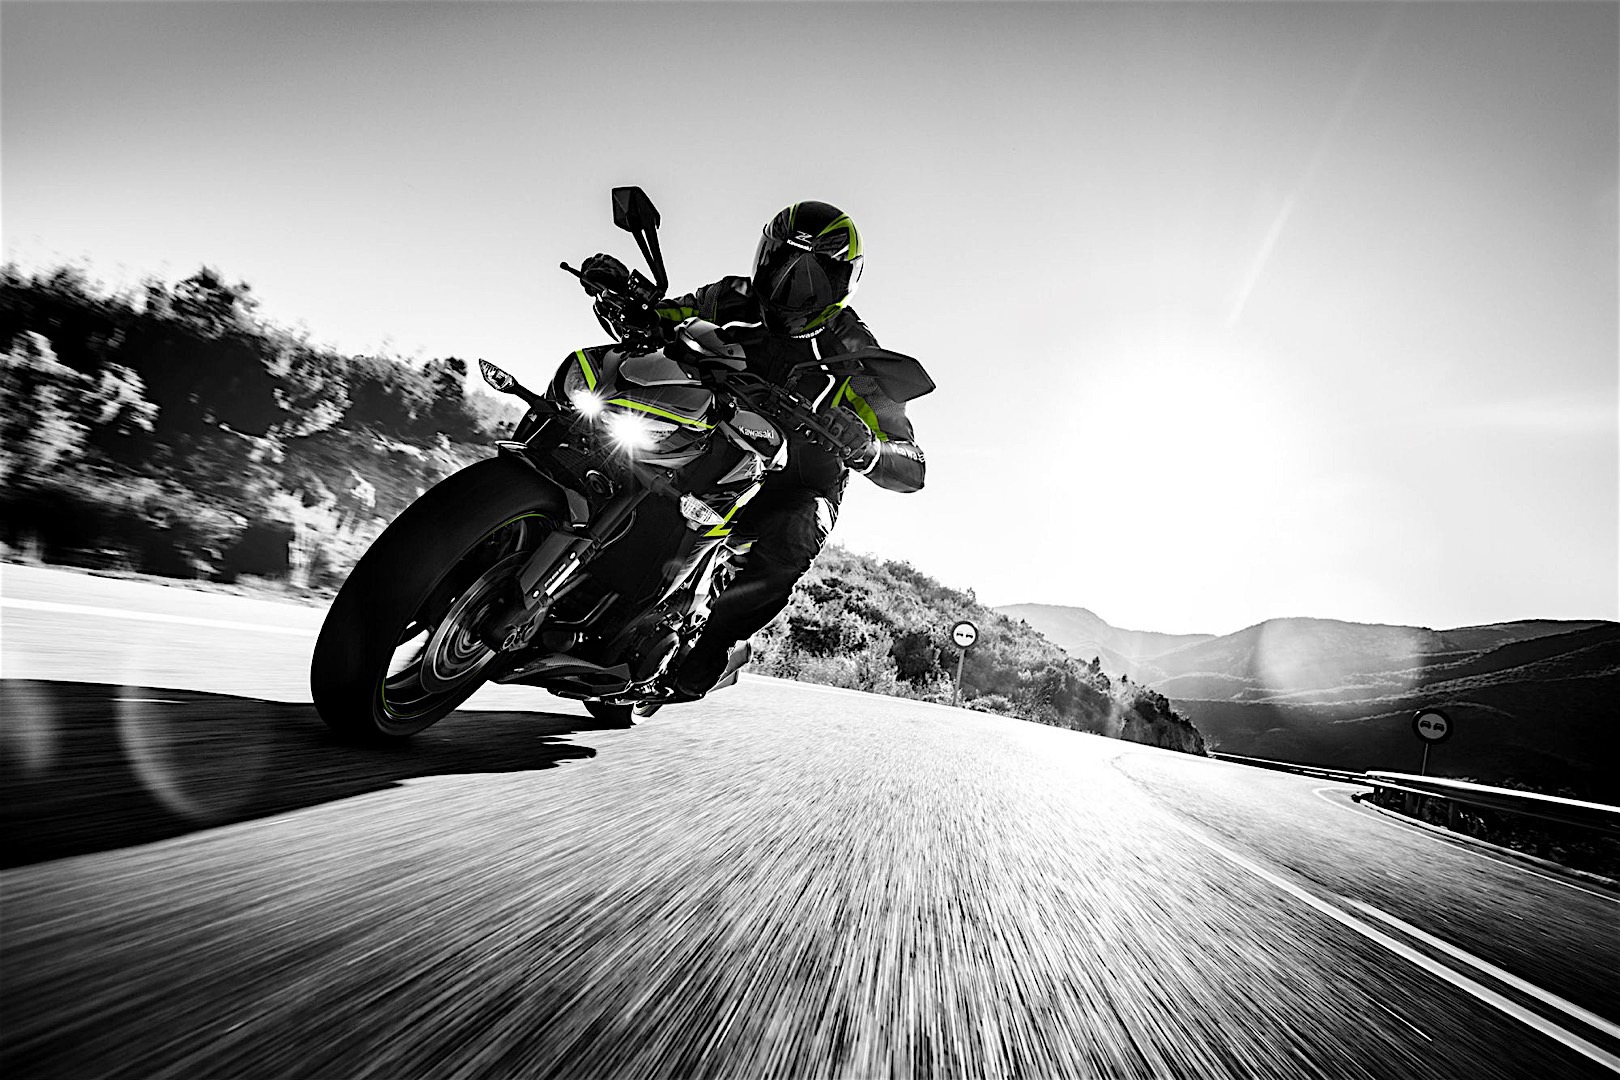 2017 Kawasaki Z1000 R revealed - BikesRepublic